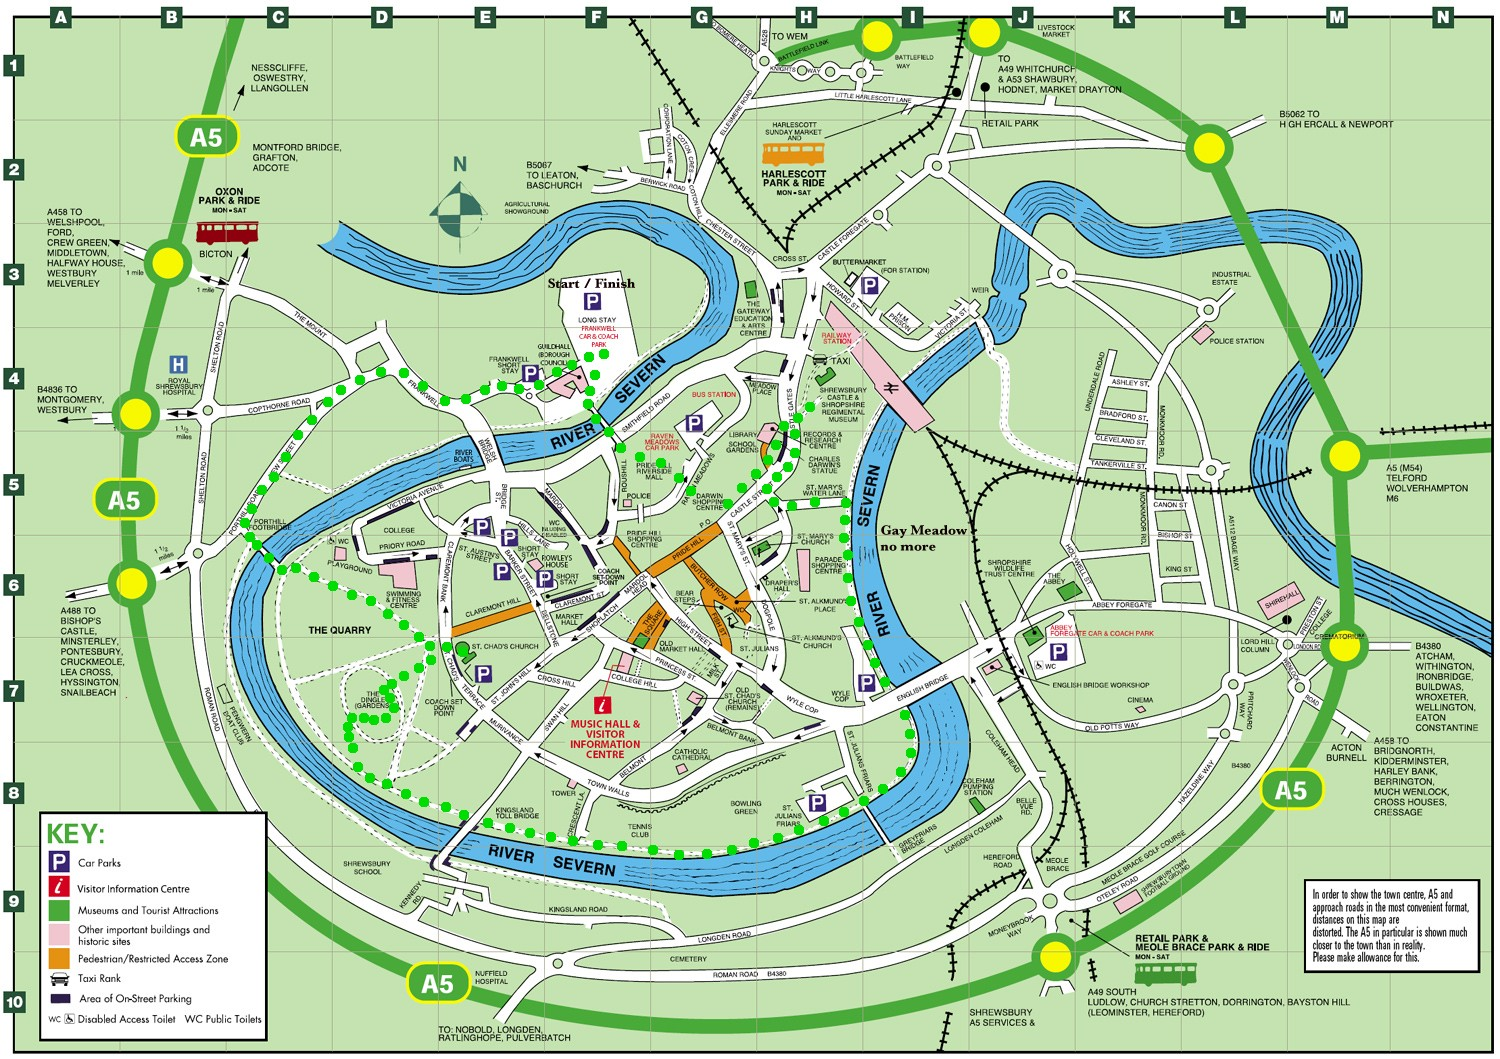 pdf today tonight brisbane map